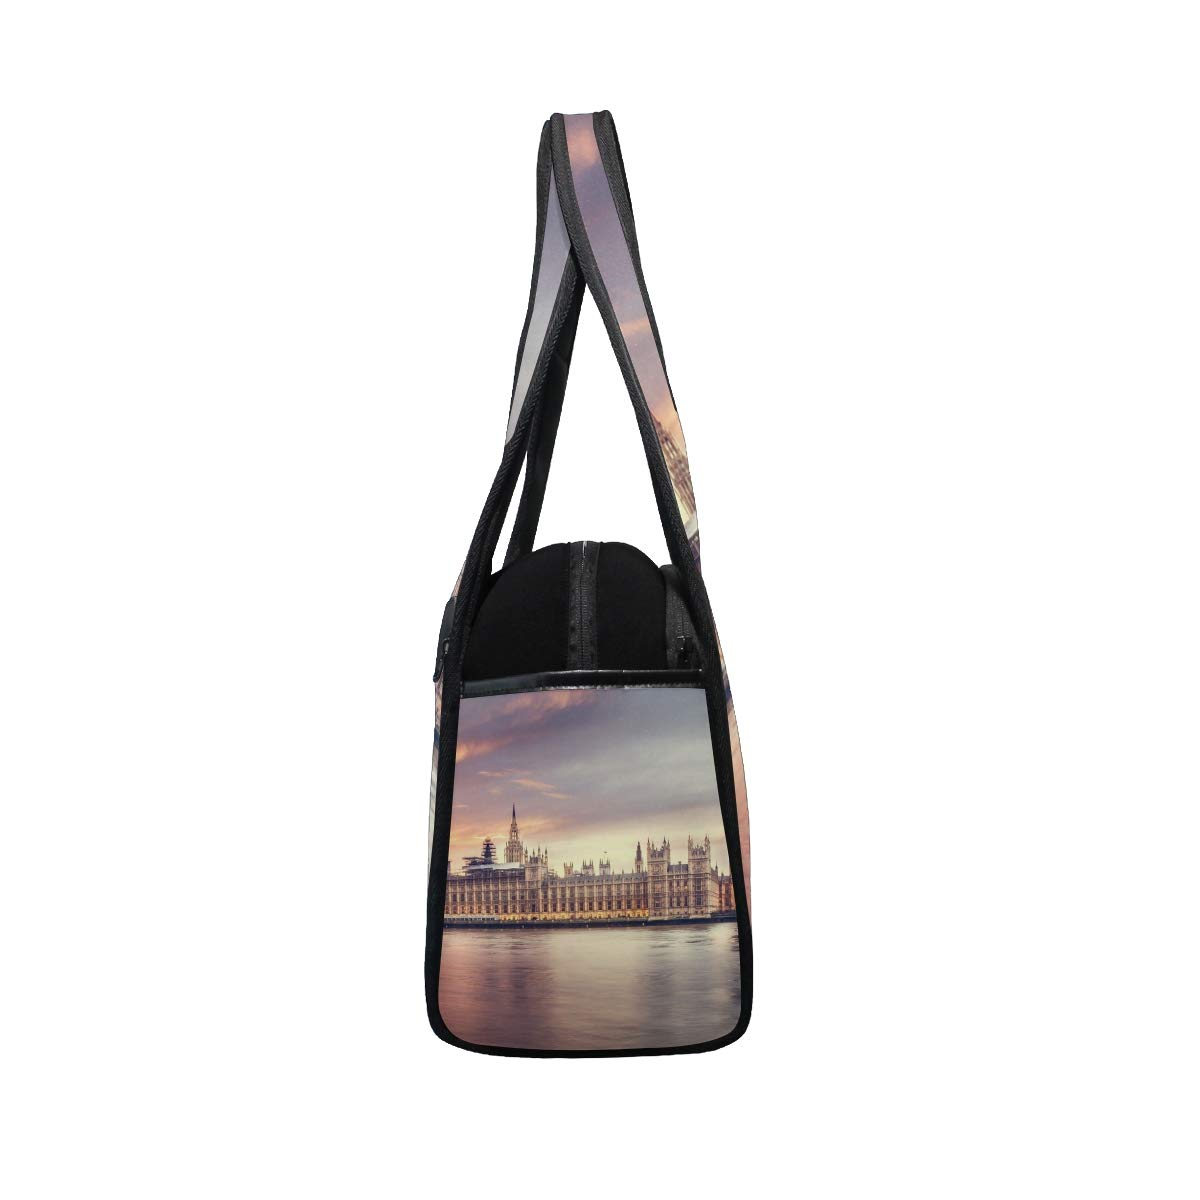 Big Ben City View At London Women Sports Gym Totes Bag Multi-Function Nylon Travel Shoulder Bag